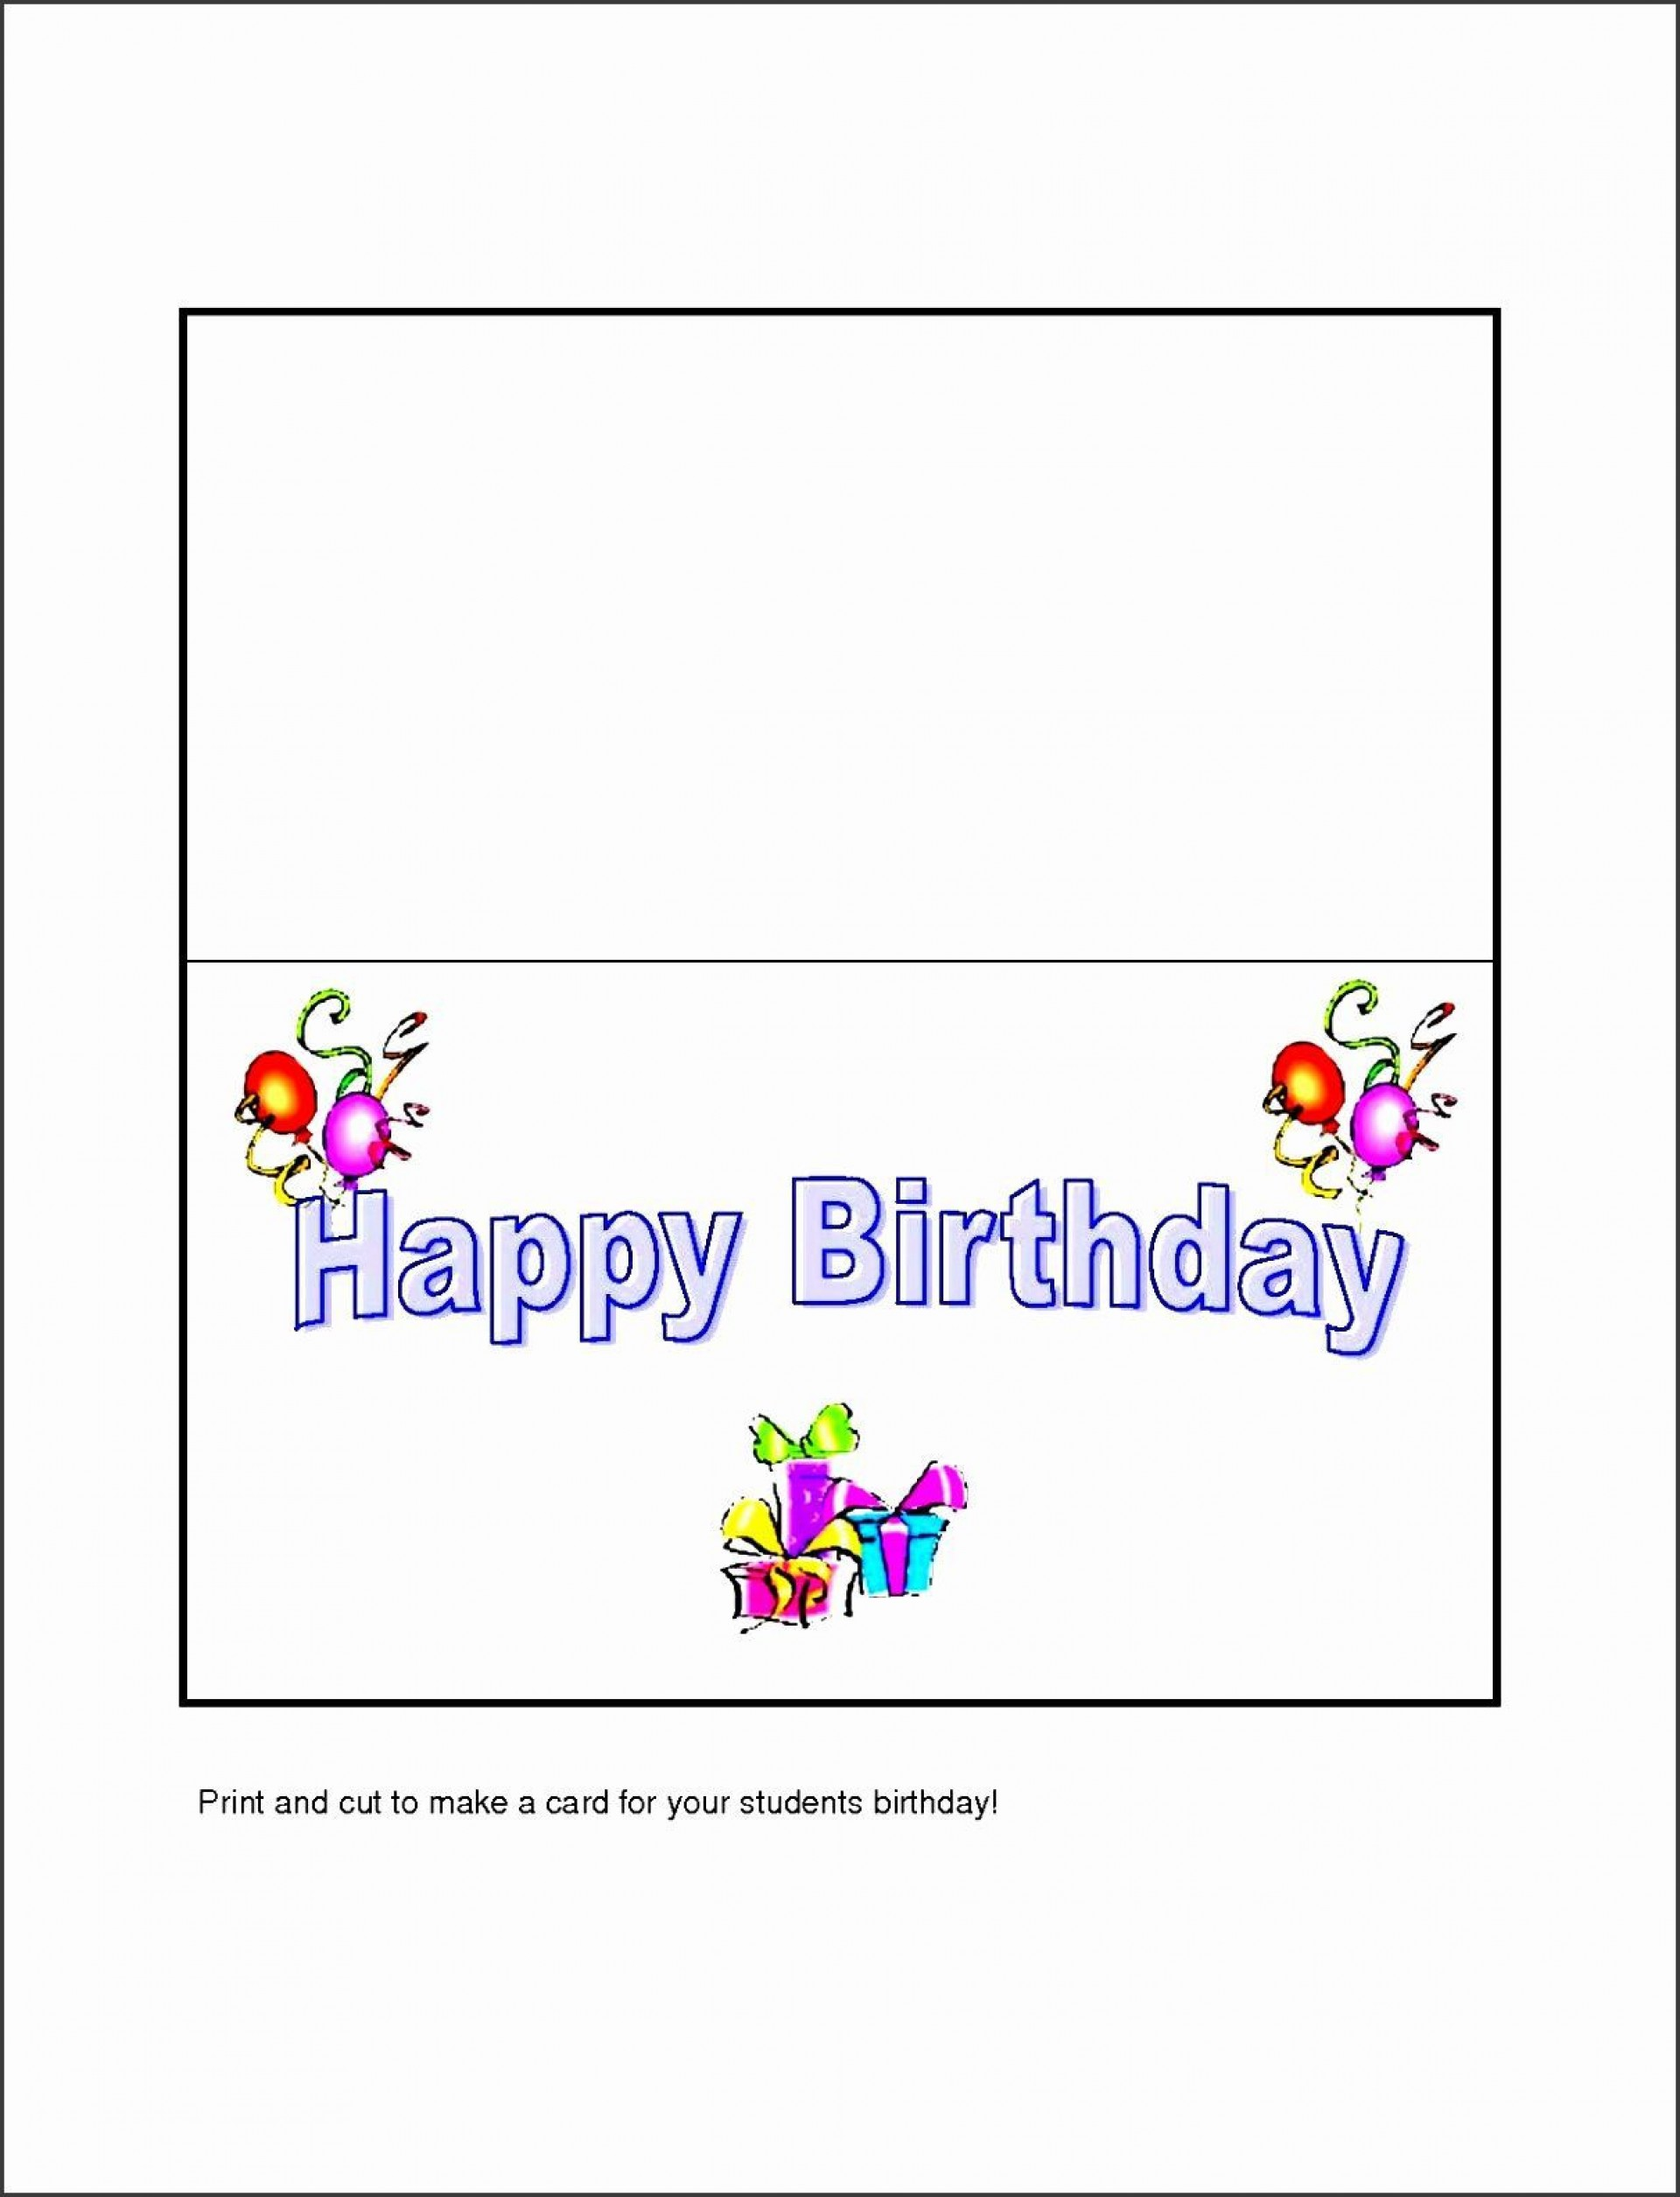 009 Astounding Happy Birthday Card Template For Word Concept 1920